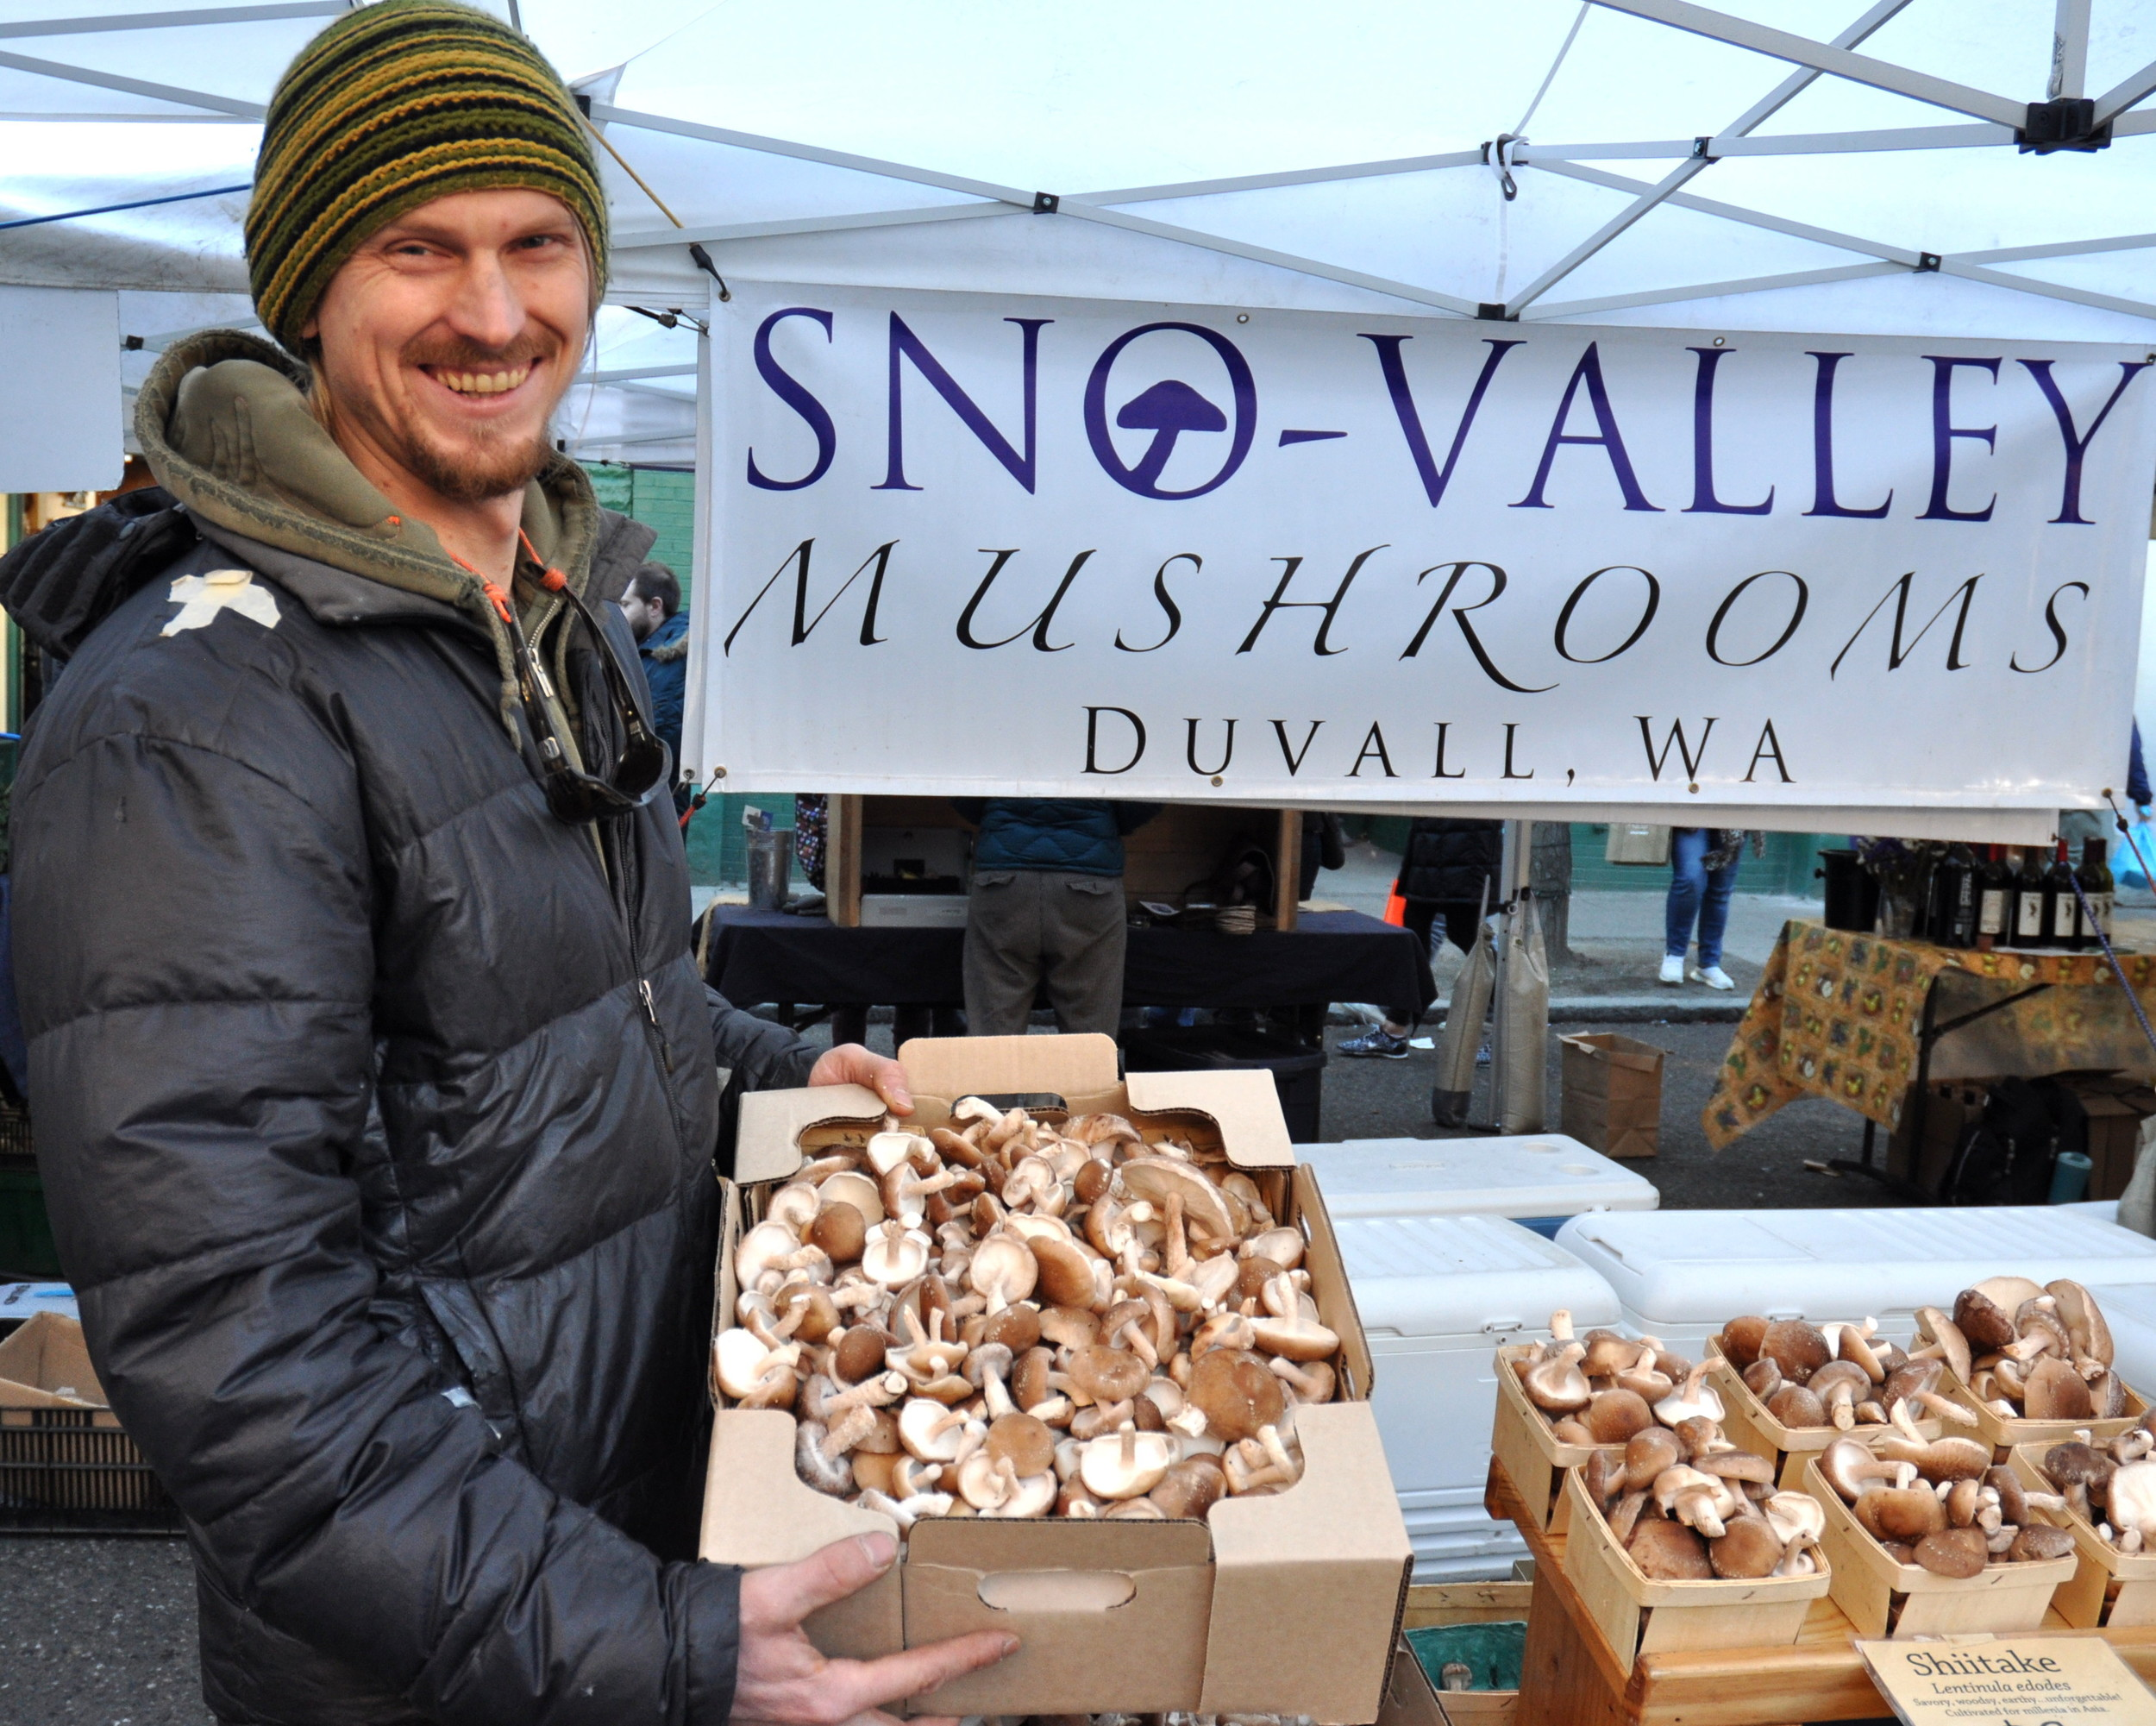 Sno-Valley Mushrooms' Rowan and shiitake mushrooms at Ballard Farmers Market. Copyright Zachary D. Lyons.